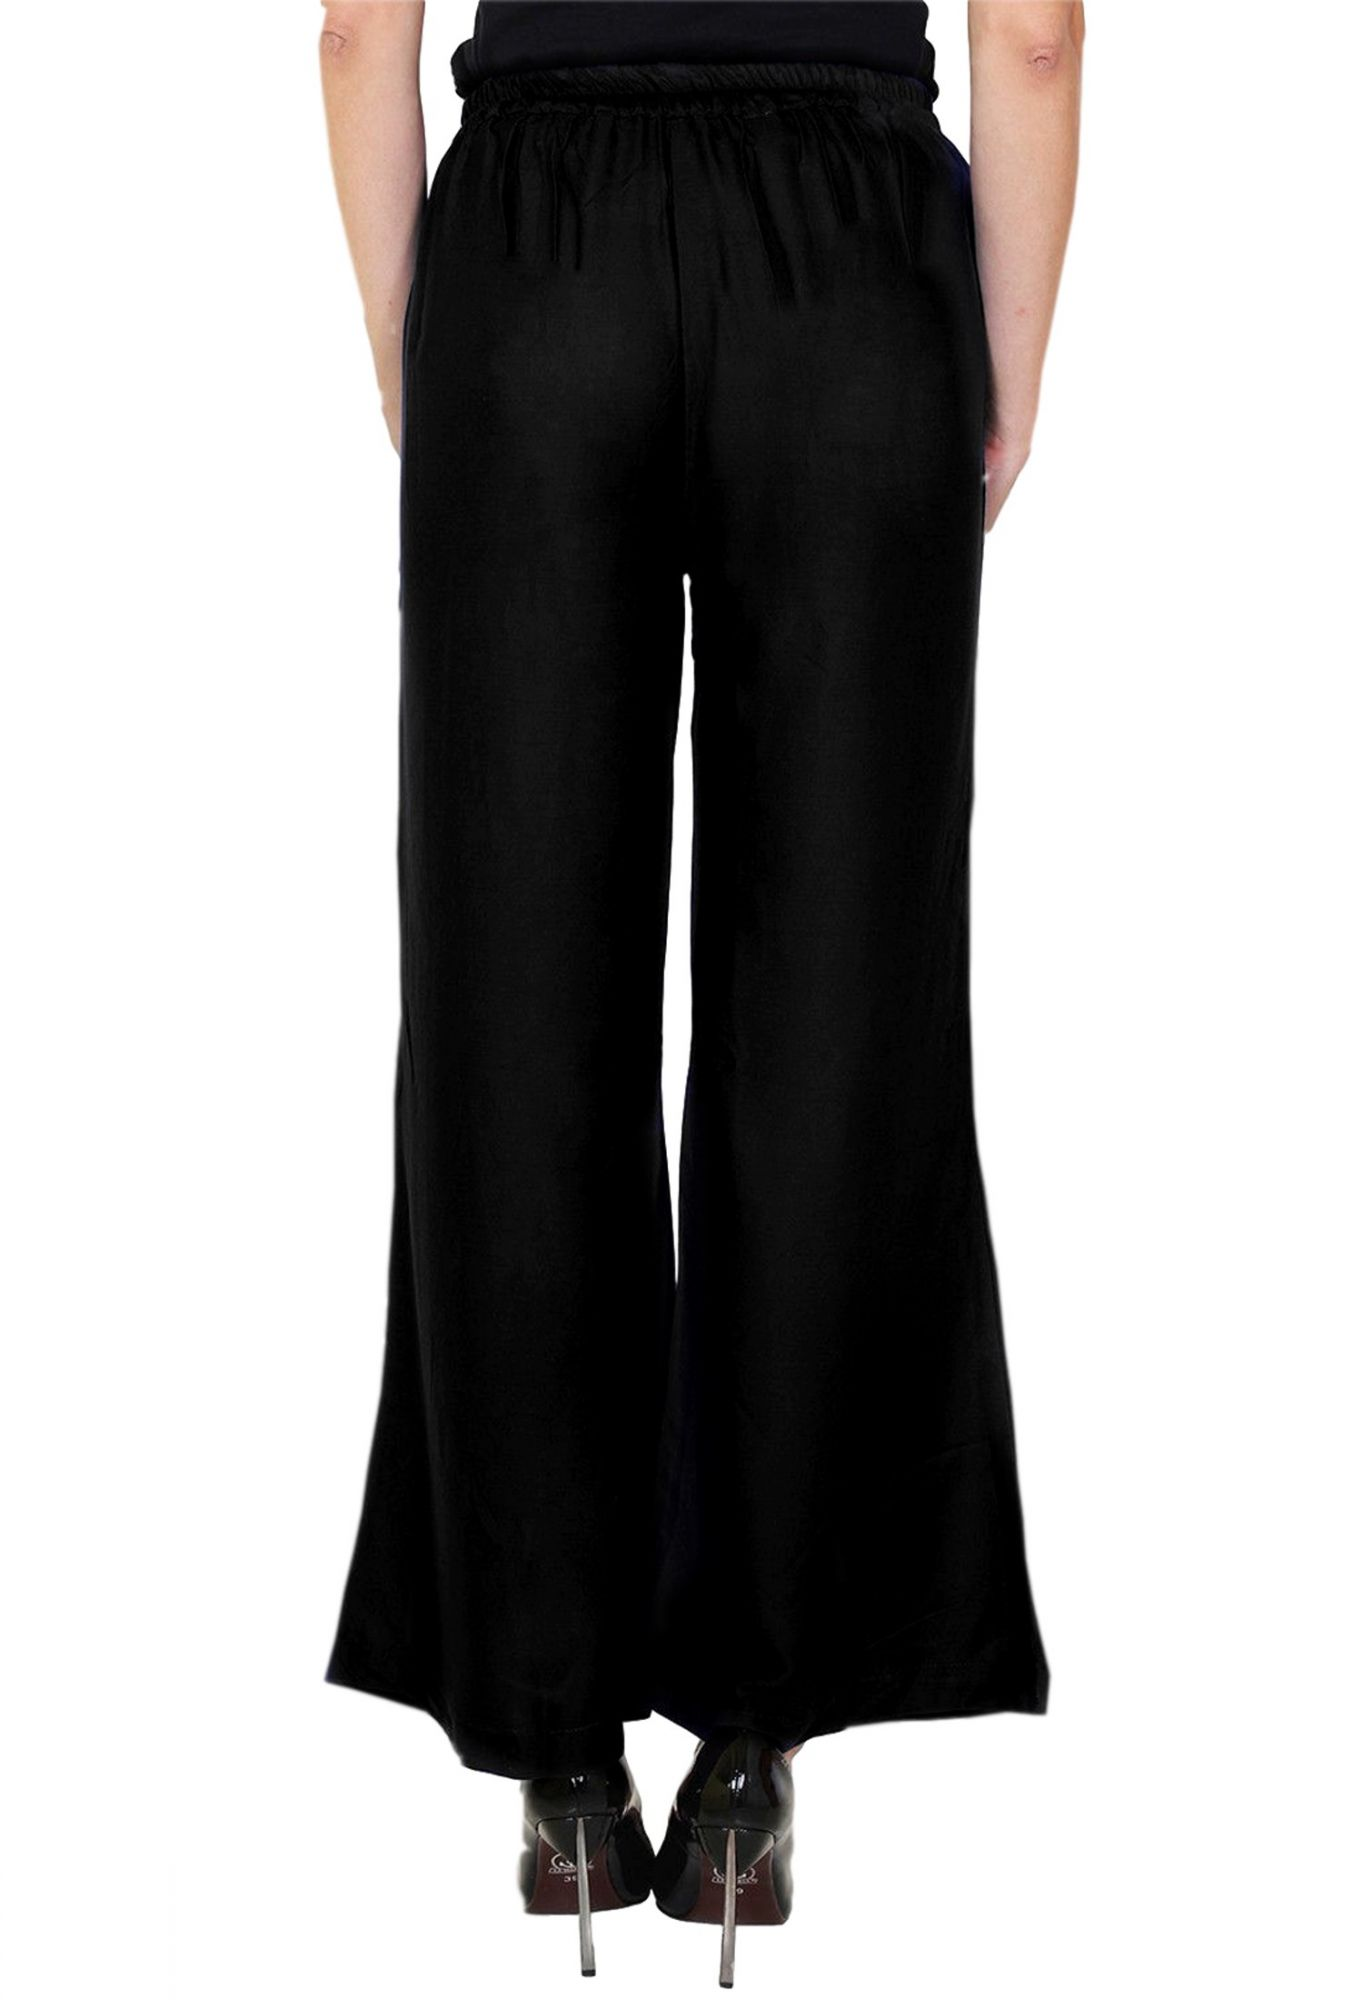 Straight Fit Bootcut Trousers in Black